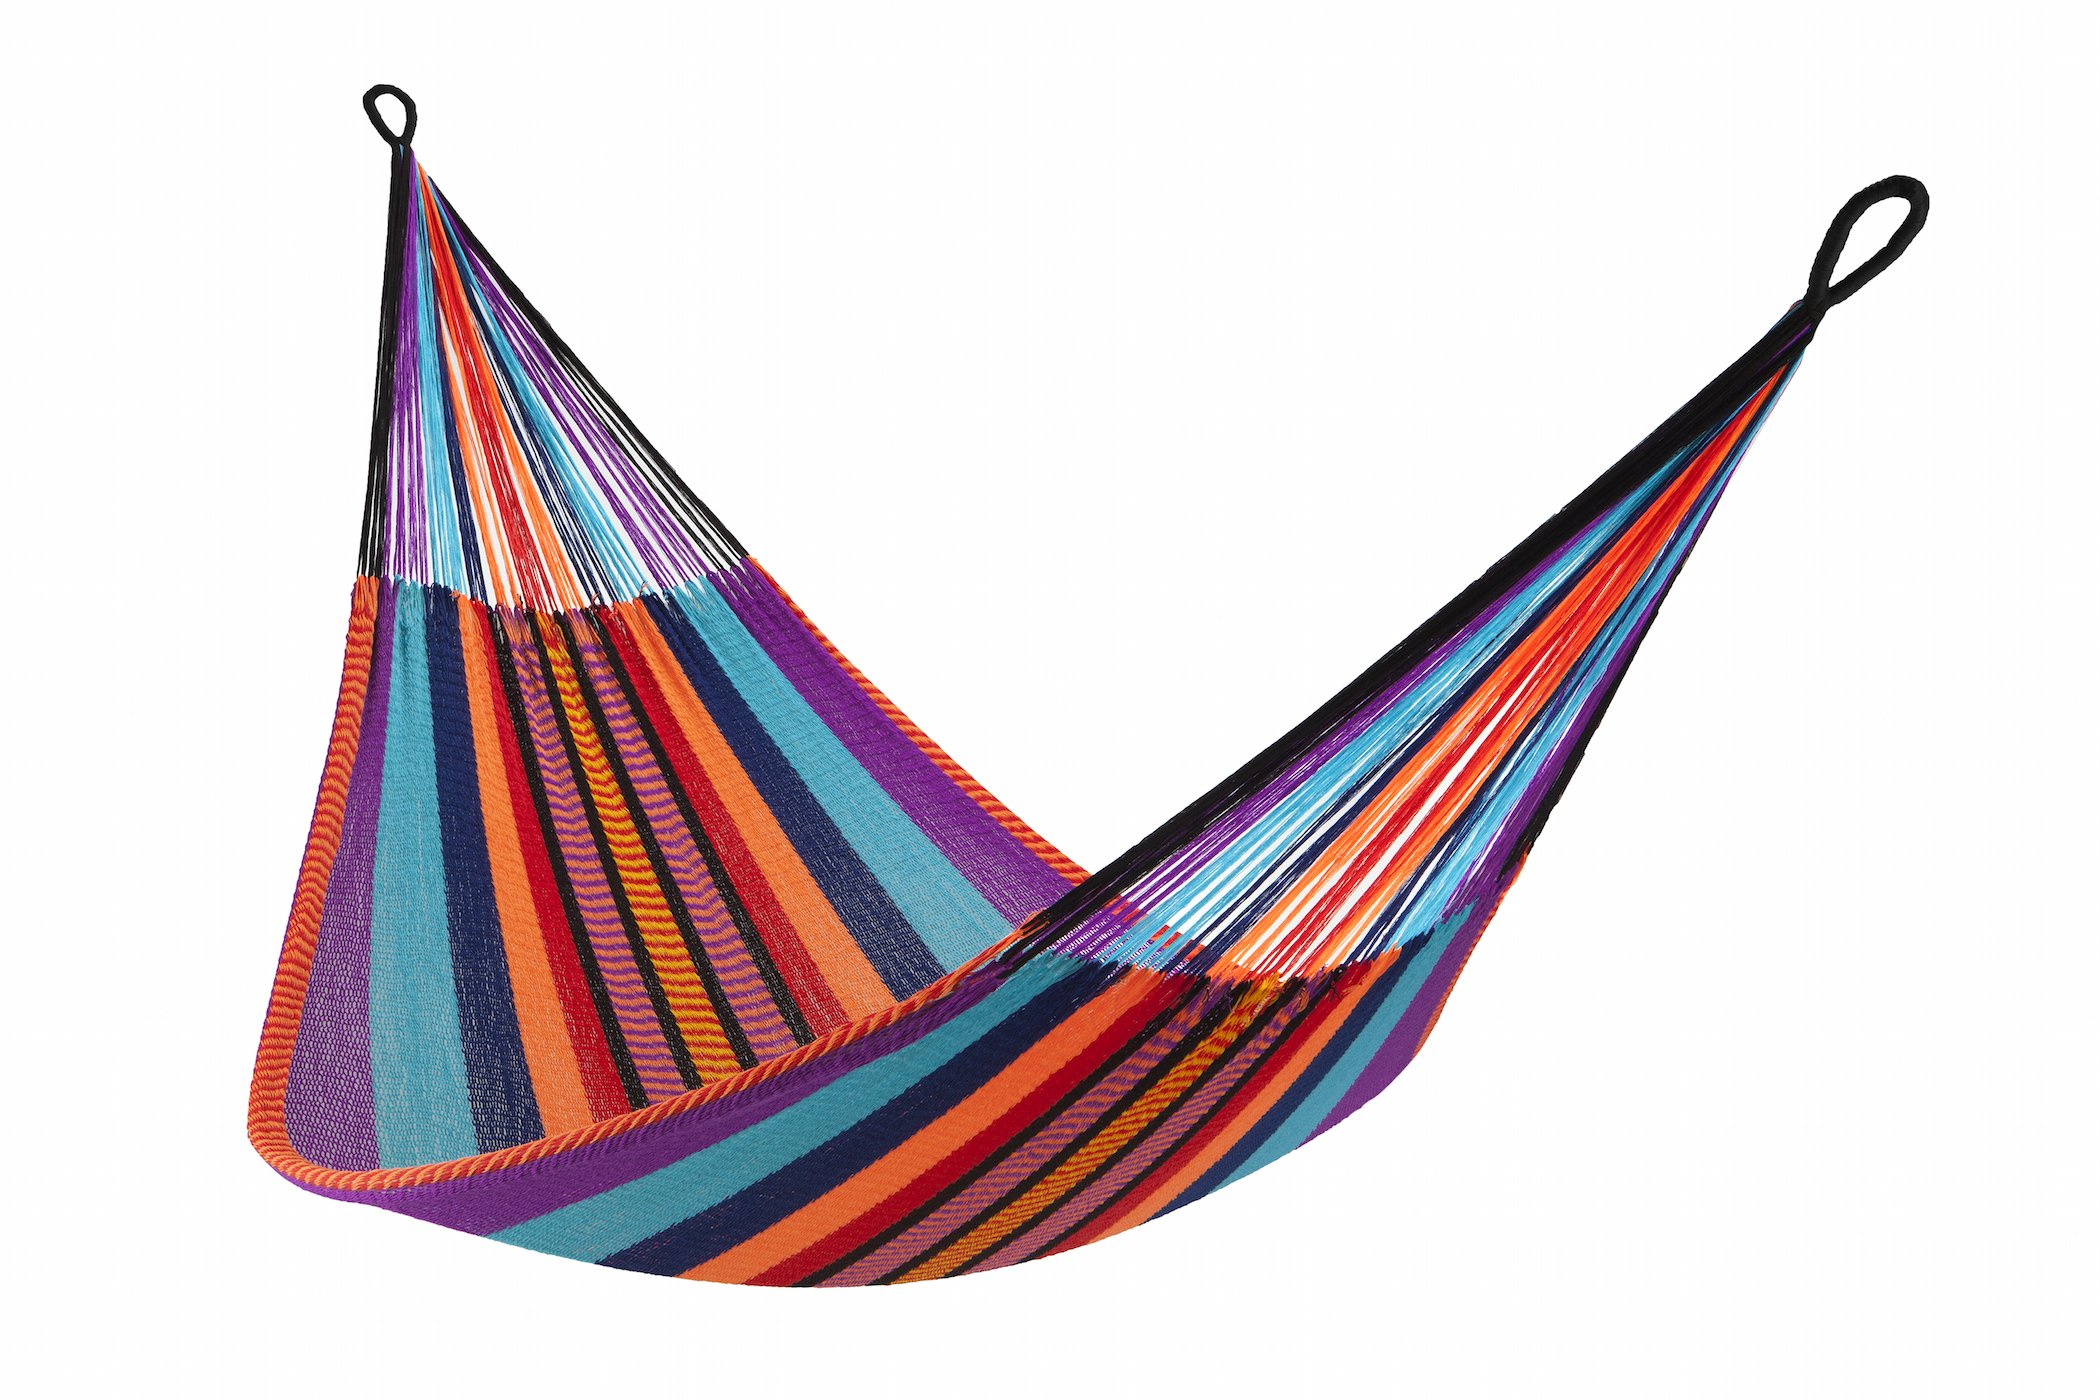 Yellow Leaf Hammocks TJ Hammock, Classic Double, Kokomo - 100% hand-woven with over 3.5 miles of yarn Maximum Capacity: 400 lbs Optimal Hanging Distance: 9-12 ft//Optimal Hanging Height: 4-6 ft - patio-furniture, patio, hammocks - 81p2pPCBG8L -